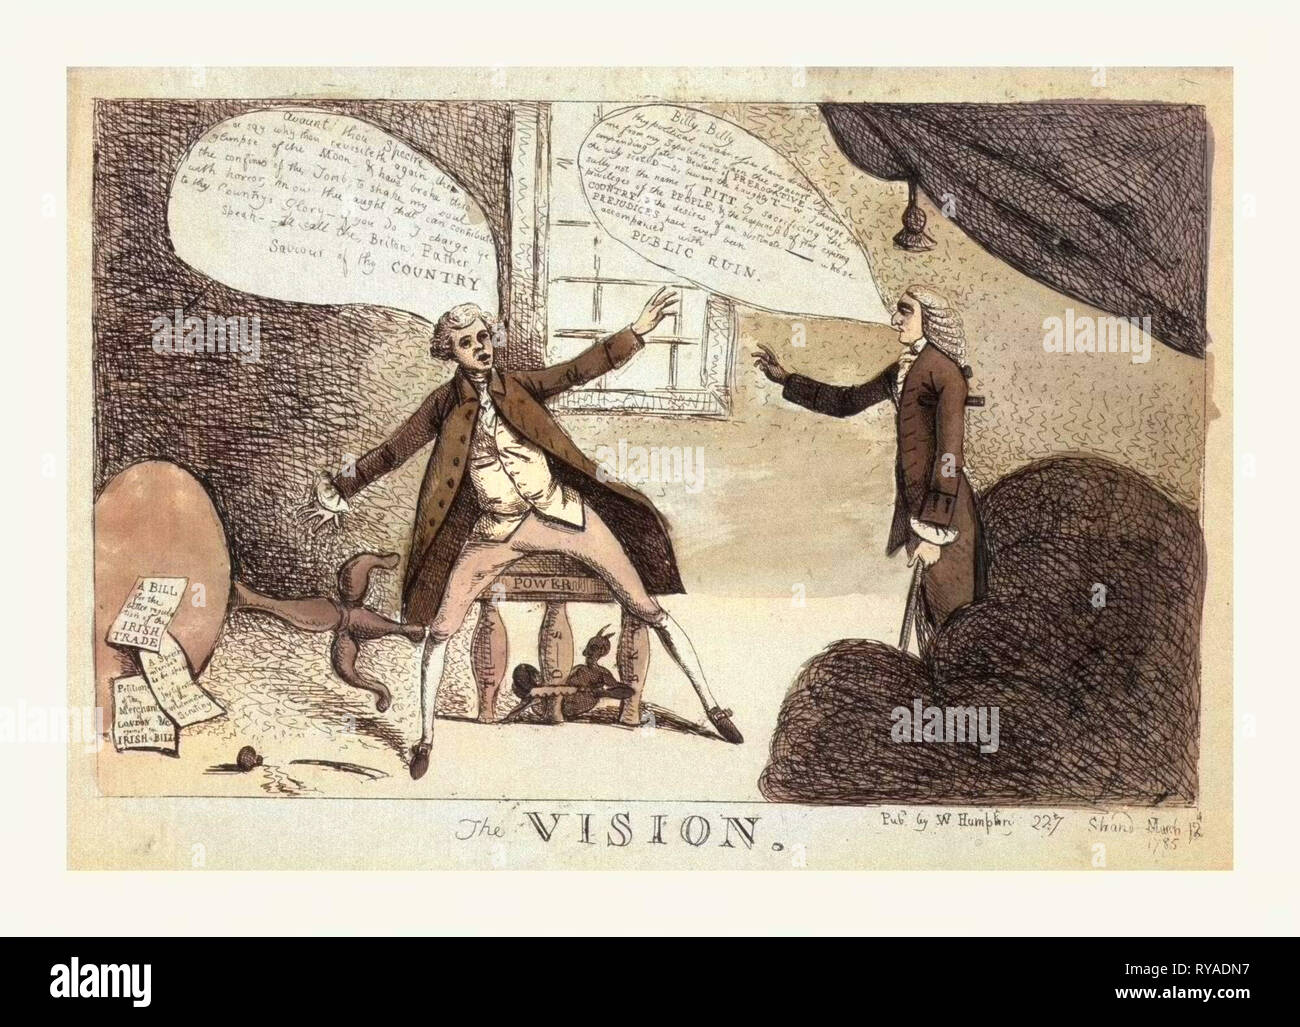 The Vision, Engraving 1785, a Young Man, Possibly William Pitt, the Younger, Being Visited by a Ghost from the Grave, Possibly the Elder William Pitt, Who Has Come to Warn Thee against Thy Impending Fate. Beware of Prerogative, Beware the Wily Scot, D -S, Beware the Haughty T W, Possibly Baron Edward Thurlow, and to Sully Not the Name of Pitt - Stock Image